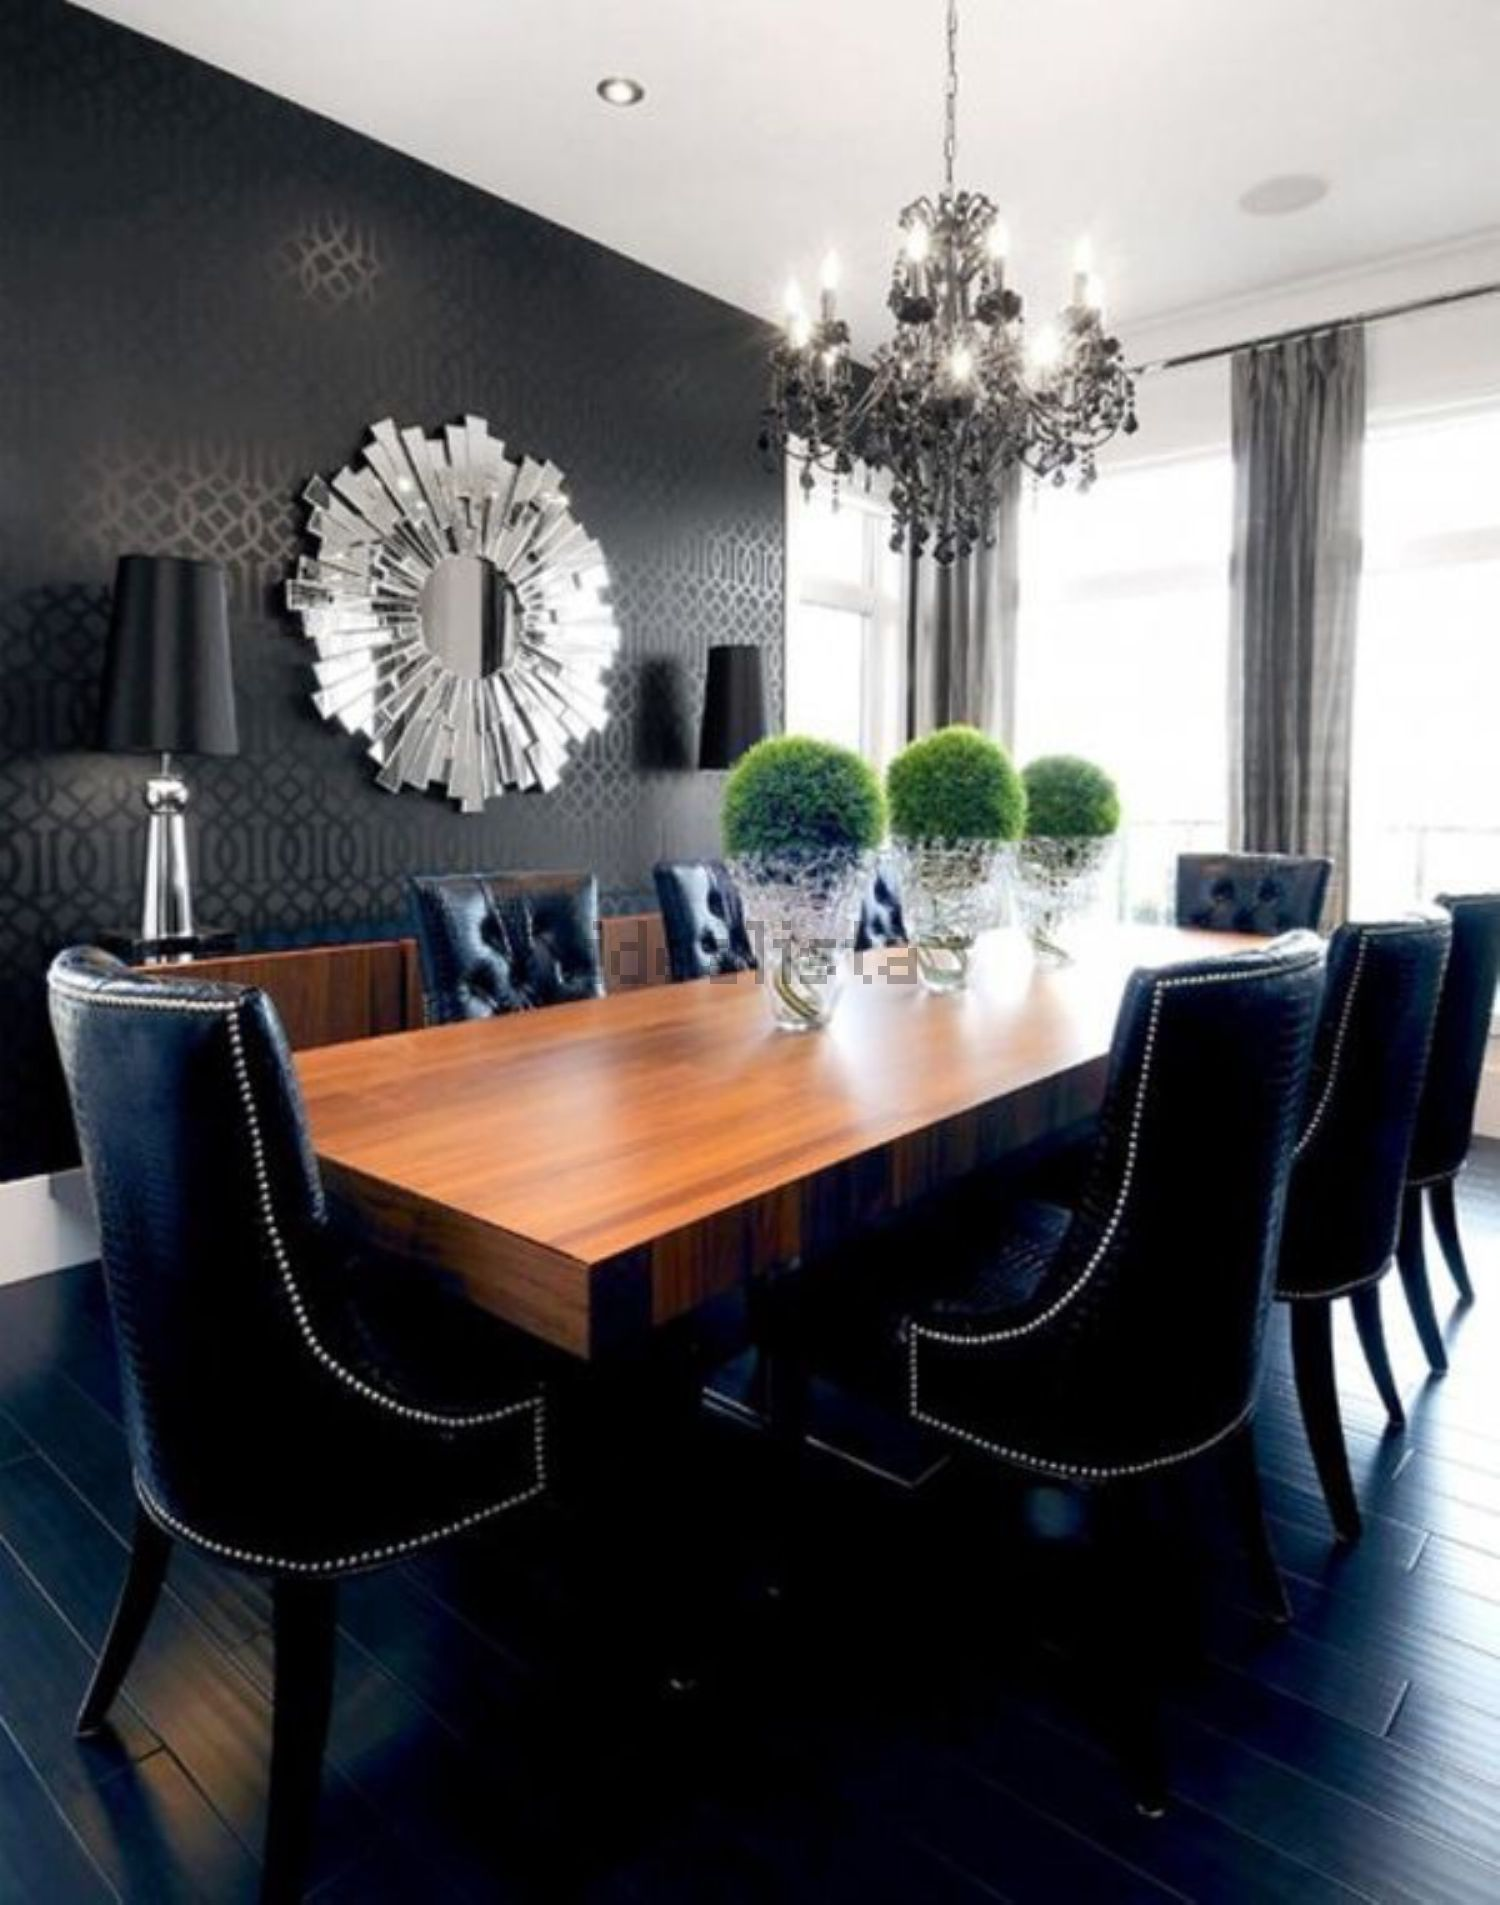 5 formal dining room designs formal dining room designs 5 Formal Dining Room Designs 5 formal dining room design 06